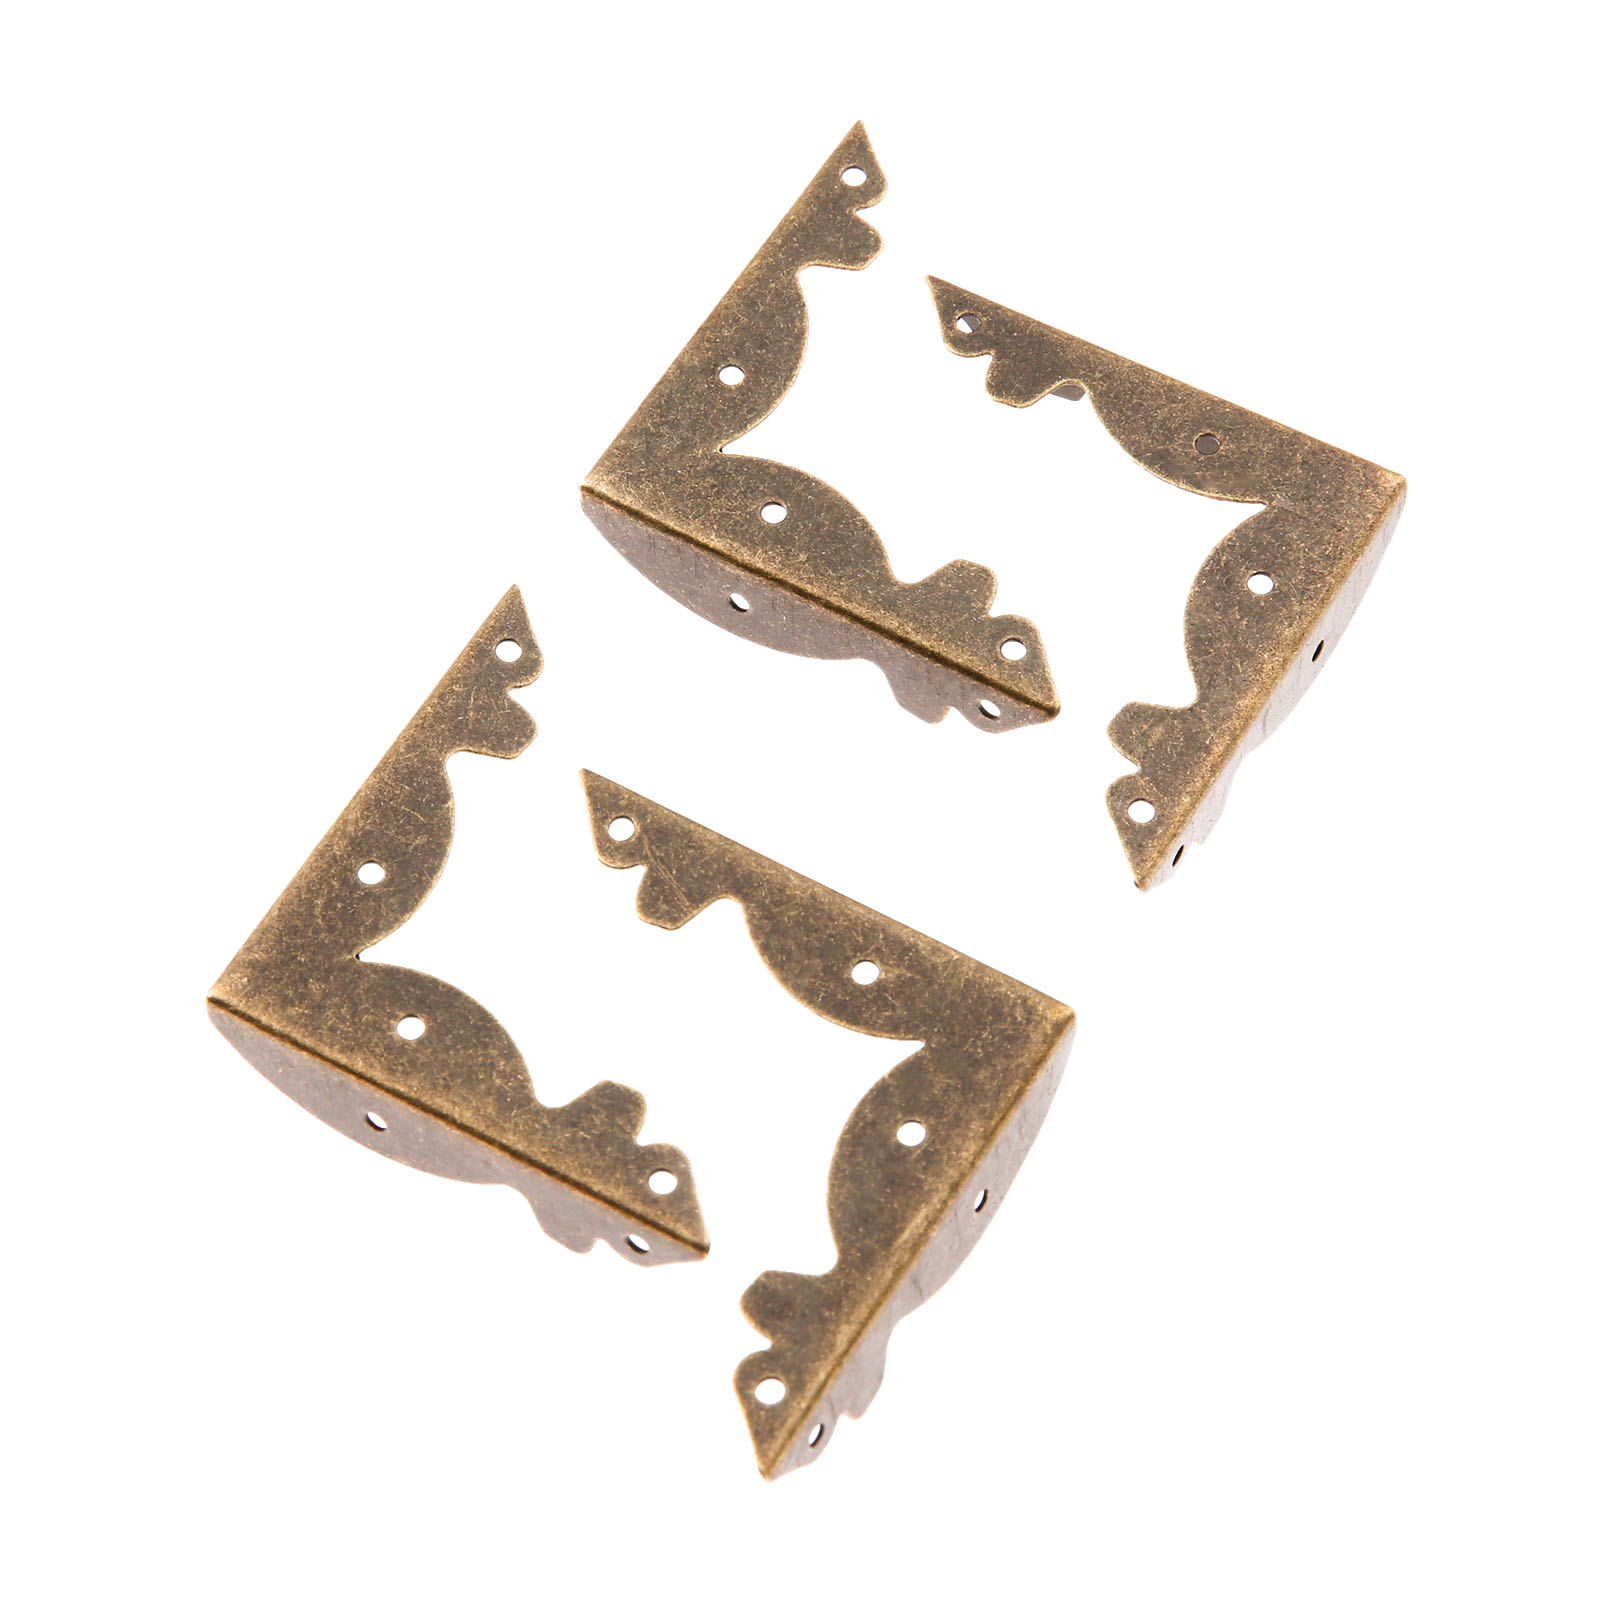 4Pcs Antique Bronze Jewelry Chest Gift Box Wooden Case Decorative Feet Leg Metal Corner Protector Support Bracket W/Screws 36mm